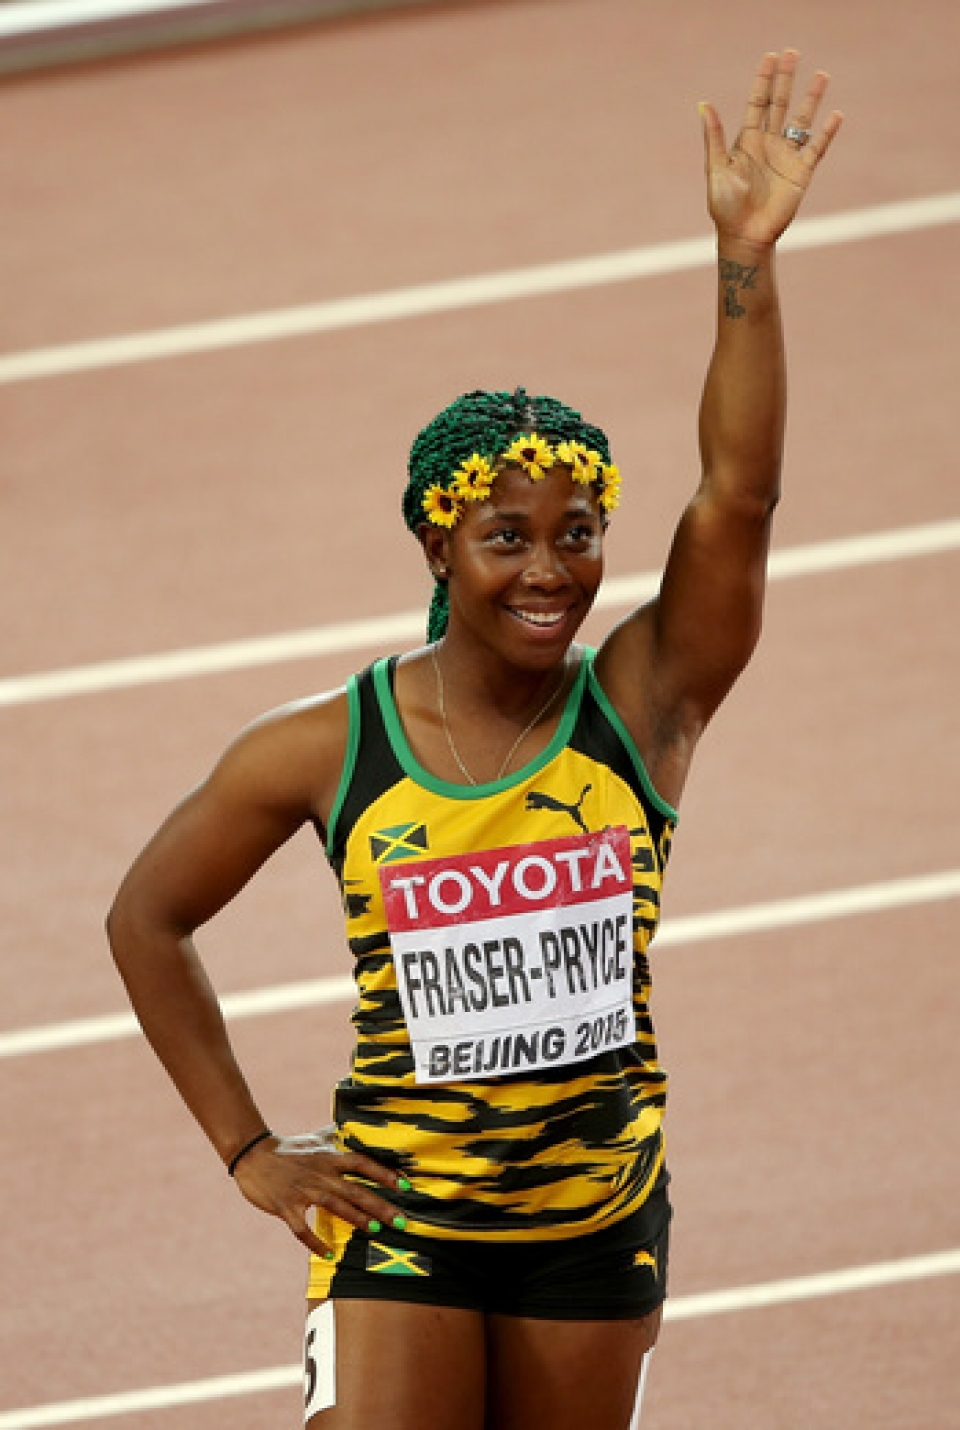 shelly-ann_fraser-pryce_pekingissa_2015_-_getty.jpg